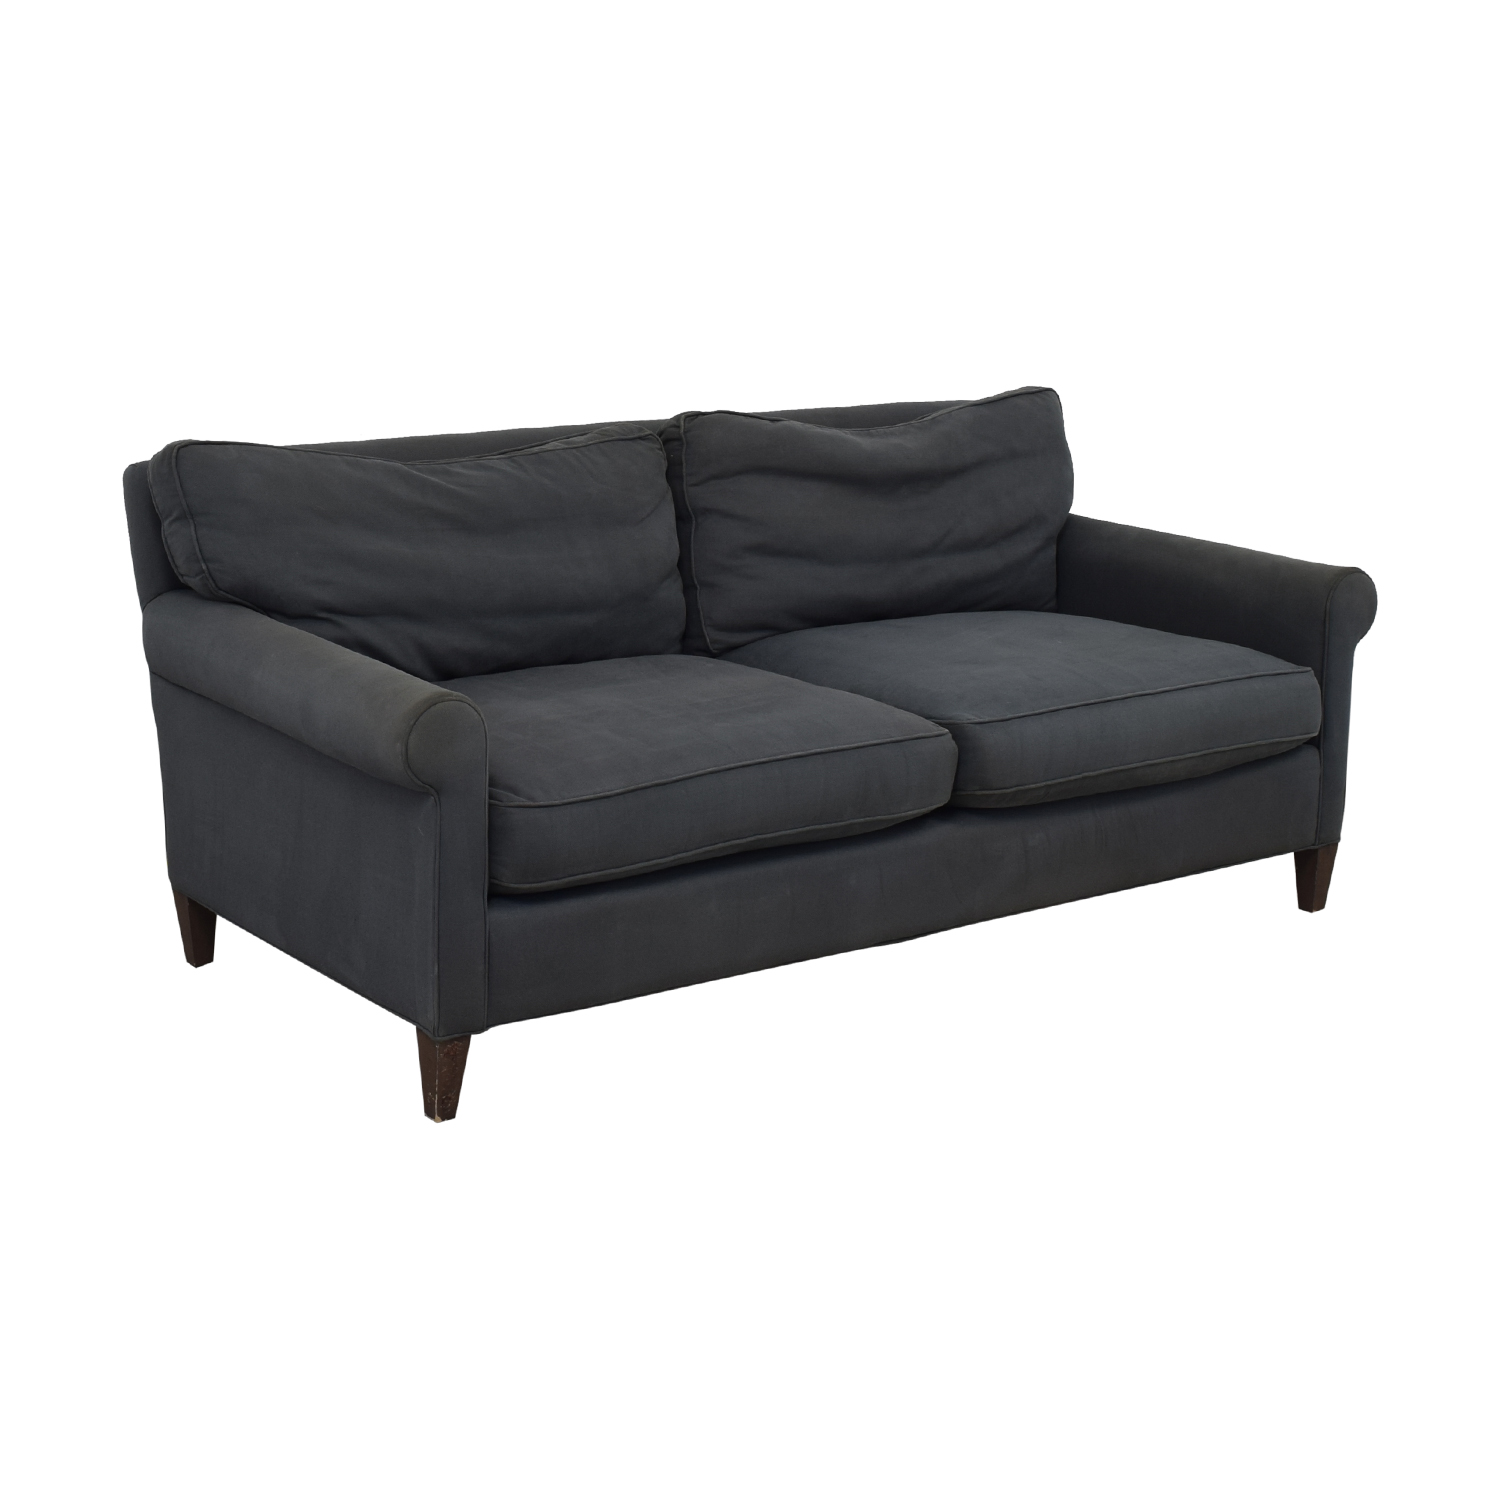 Crate & Barrel Crate & Barrel Montclair Apartment Sofa on sale